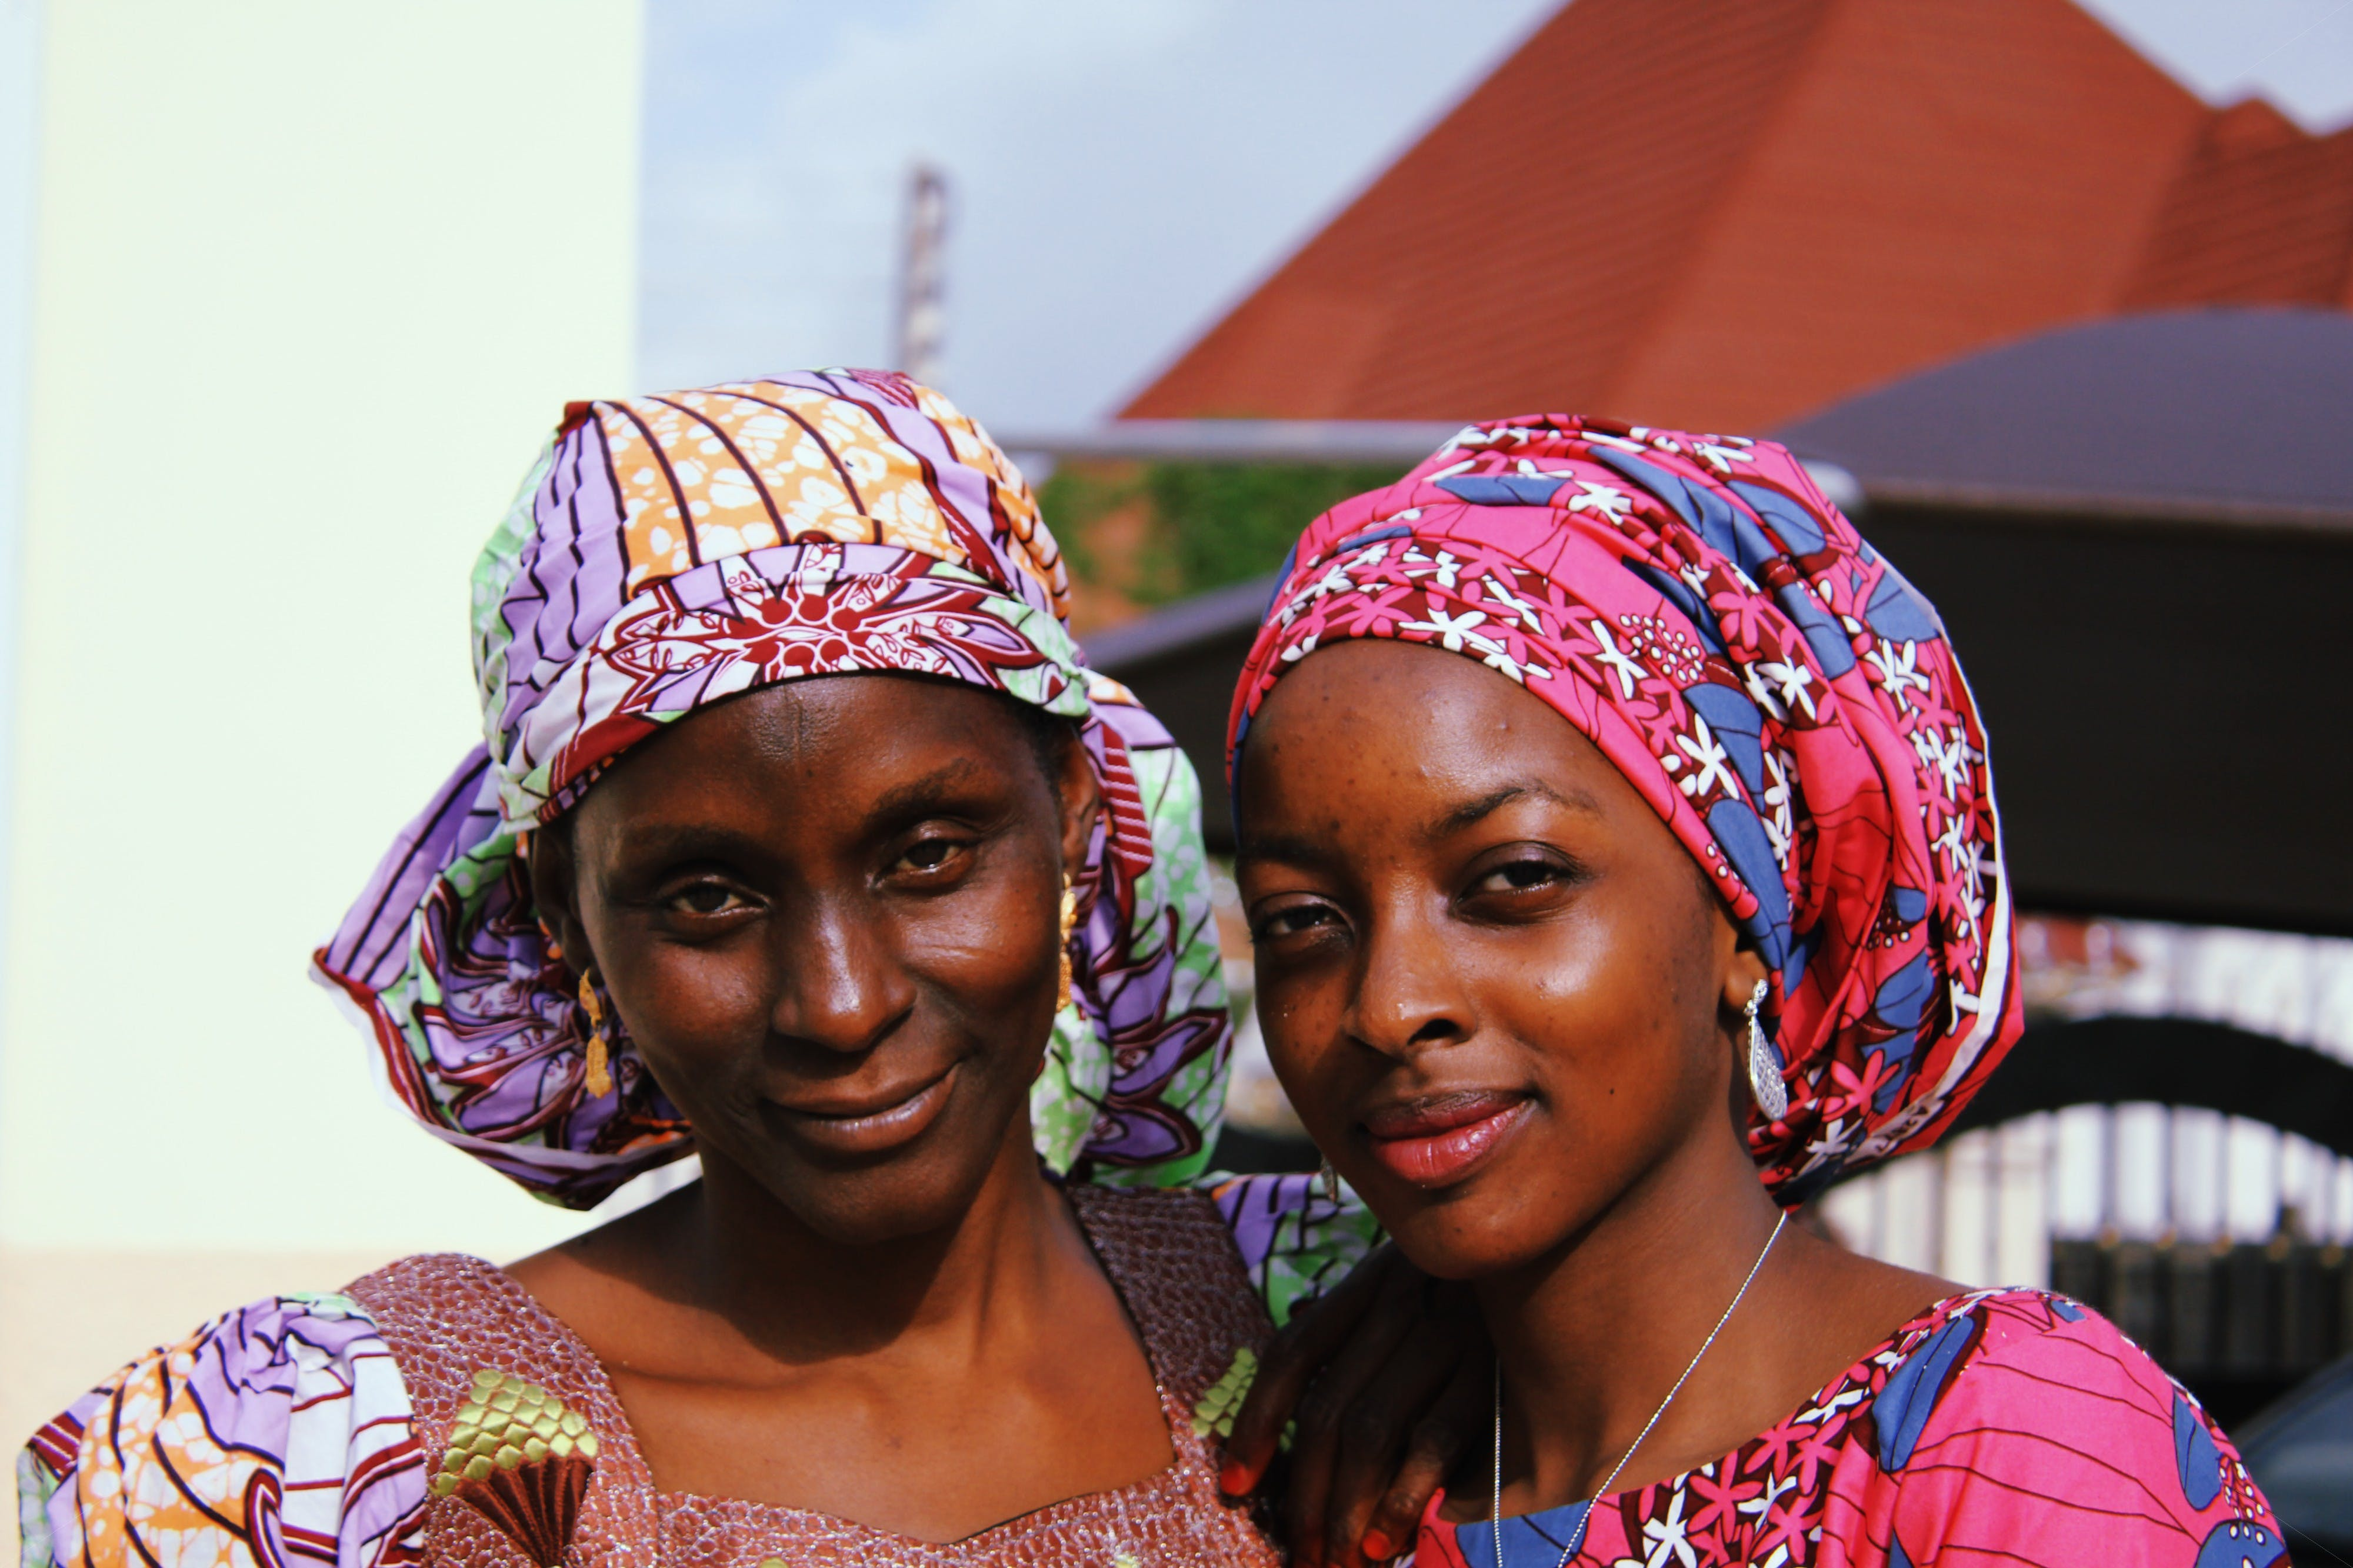 Two Women in Traditional Dresses Posing for Photo